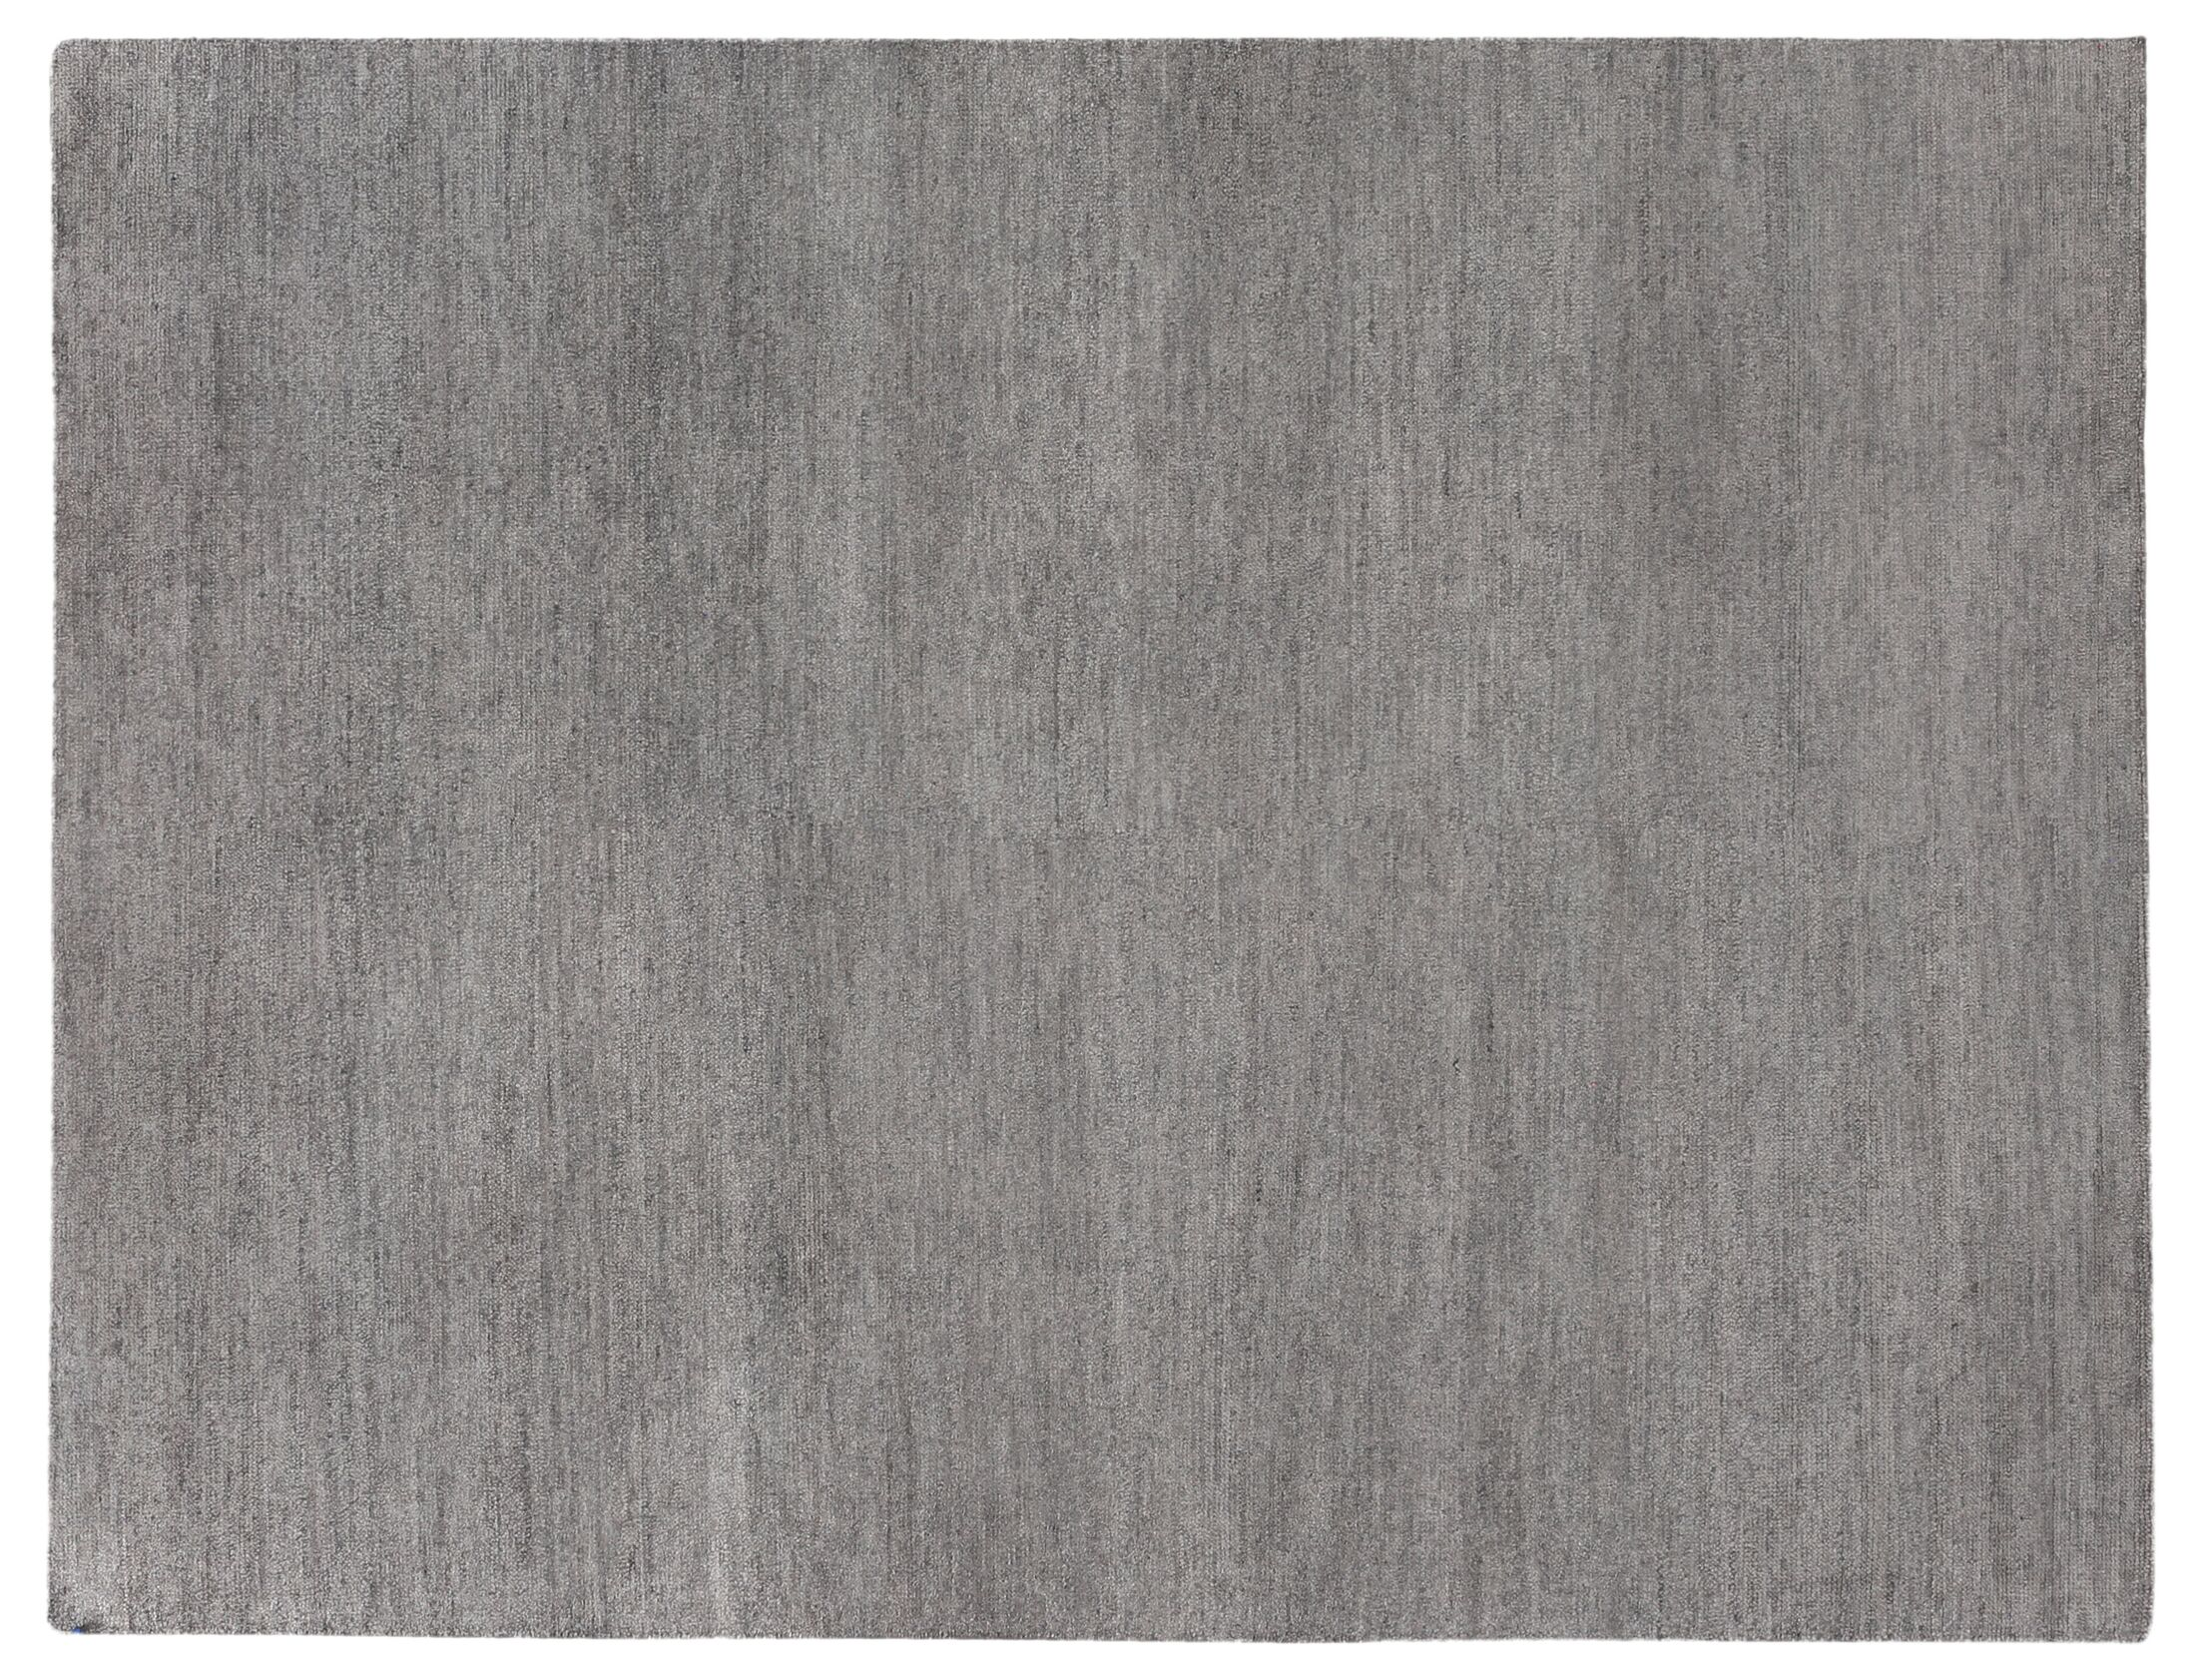 Perry Hand-Knotted Silk Gray Area Rug Rug Size: Rectangle 14' x 18'